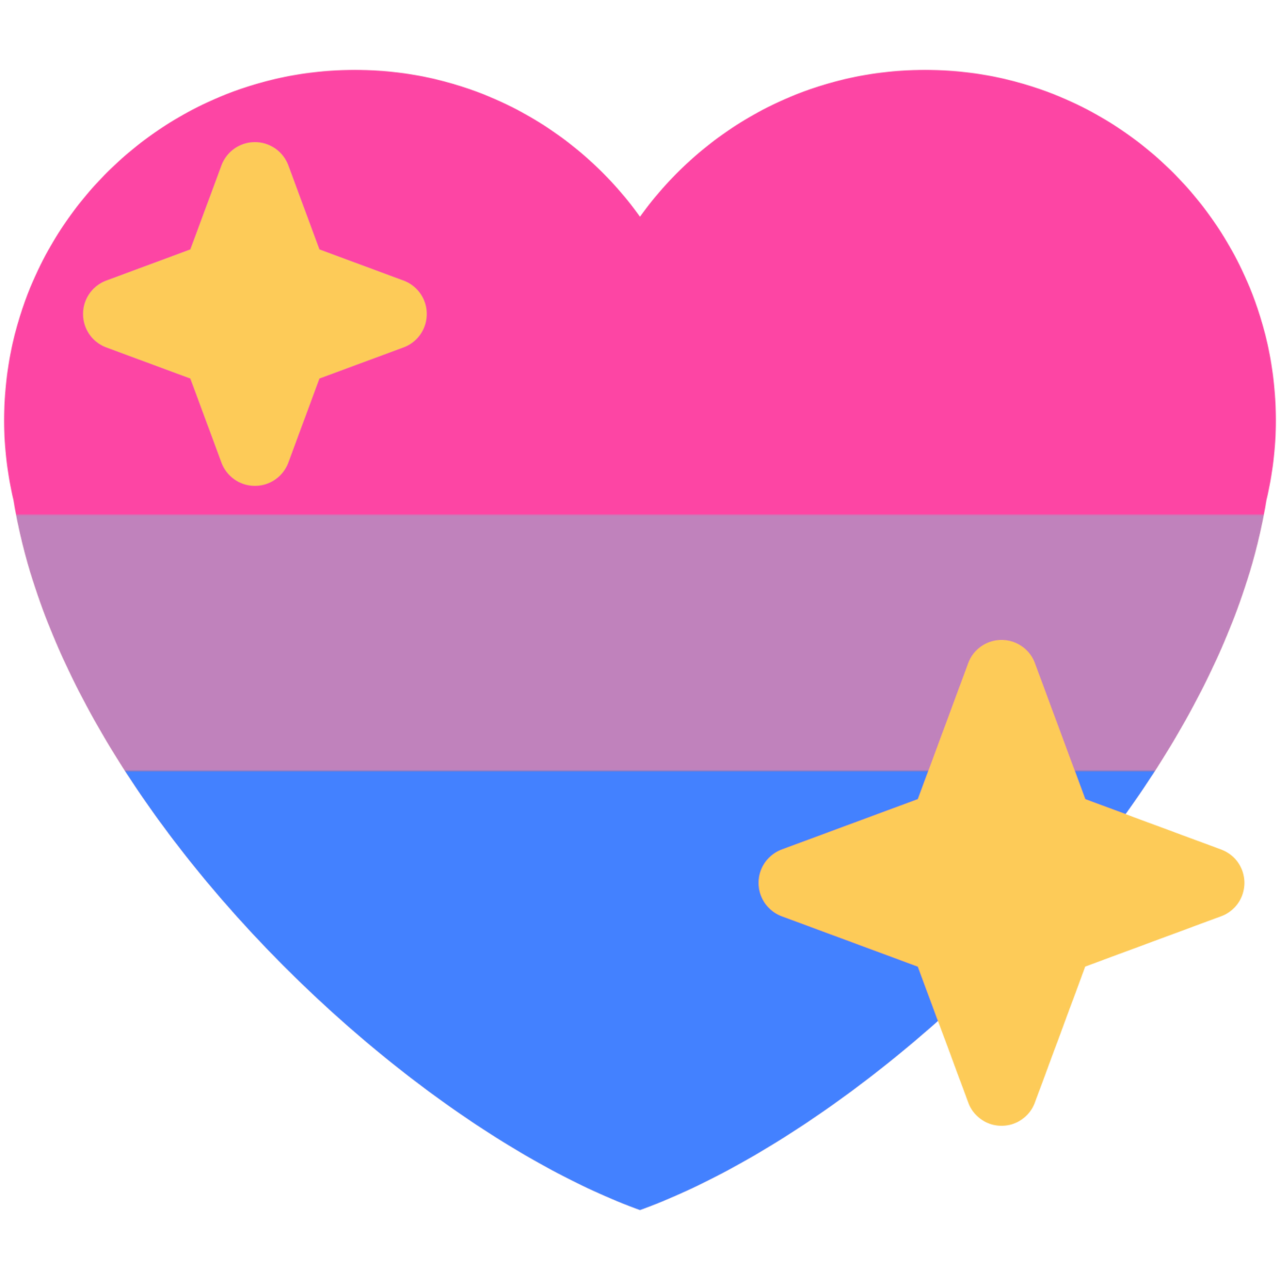 heart emoji, the forest discord emoji #14336